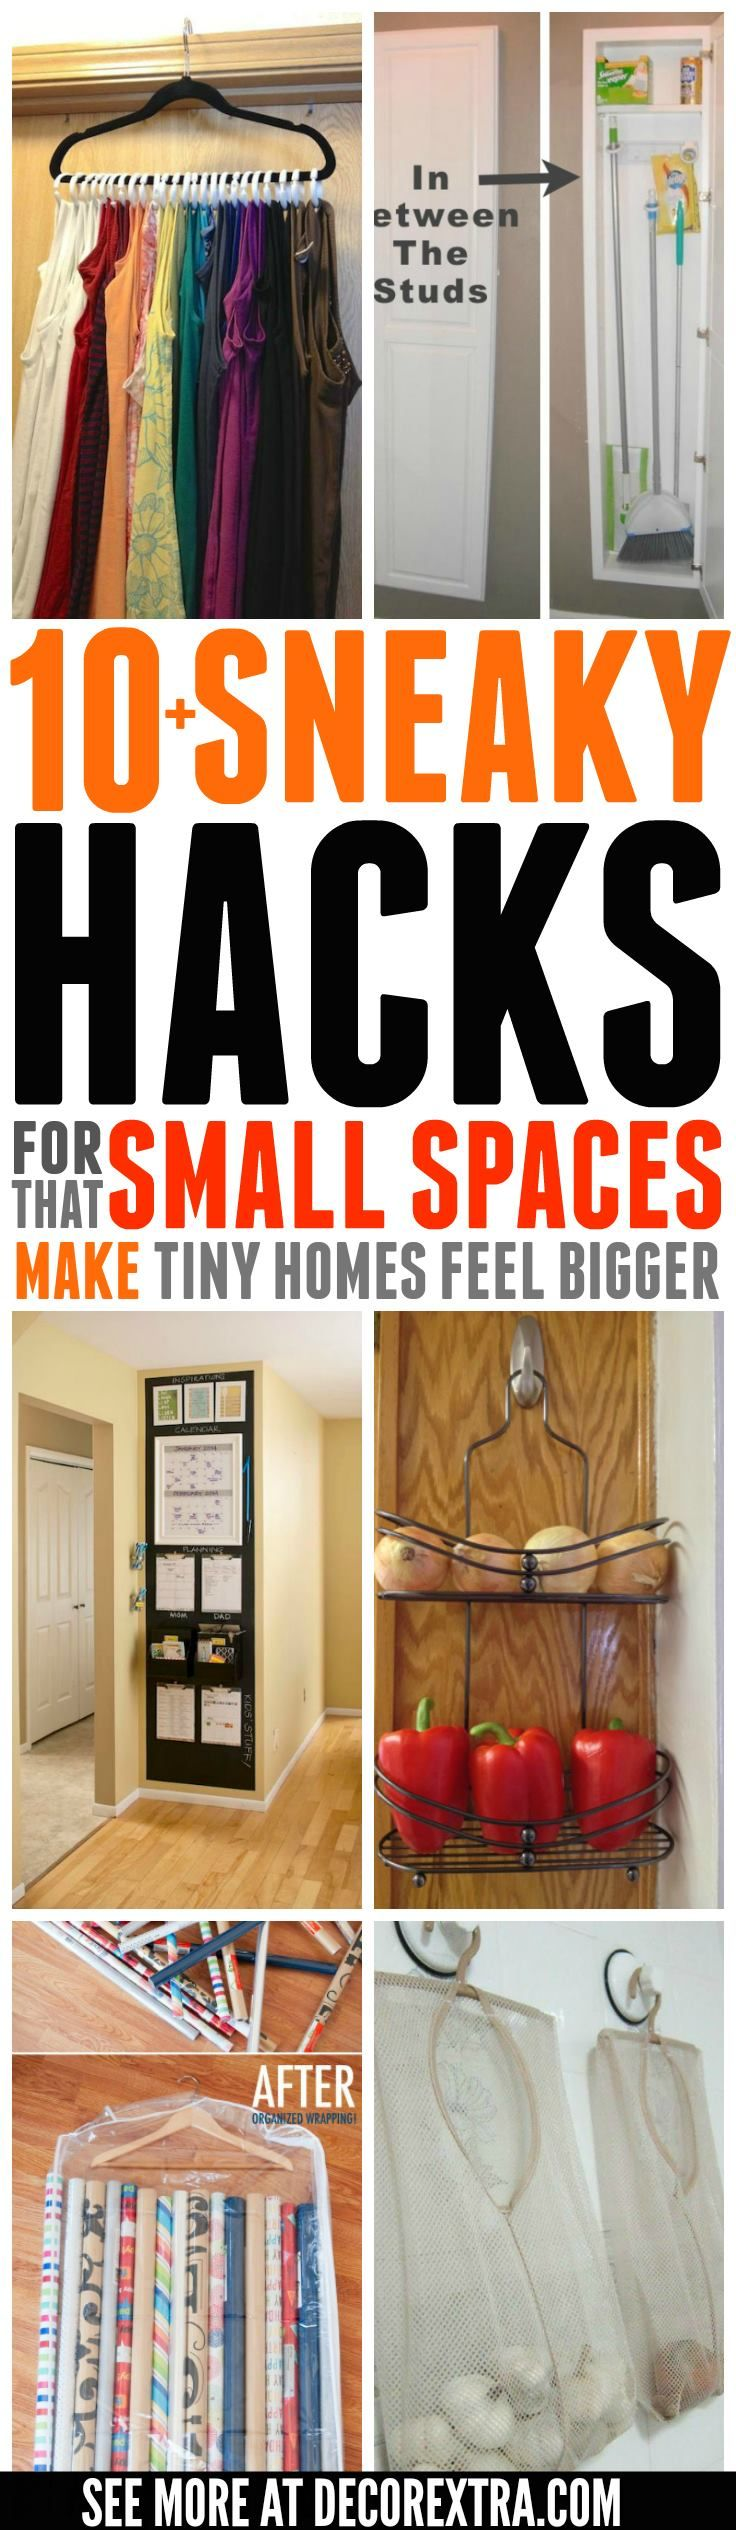 10+ SNEAKY Hacks For Small Space Living That Make Tiny Homes Feel ...